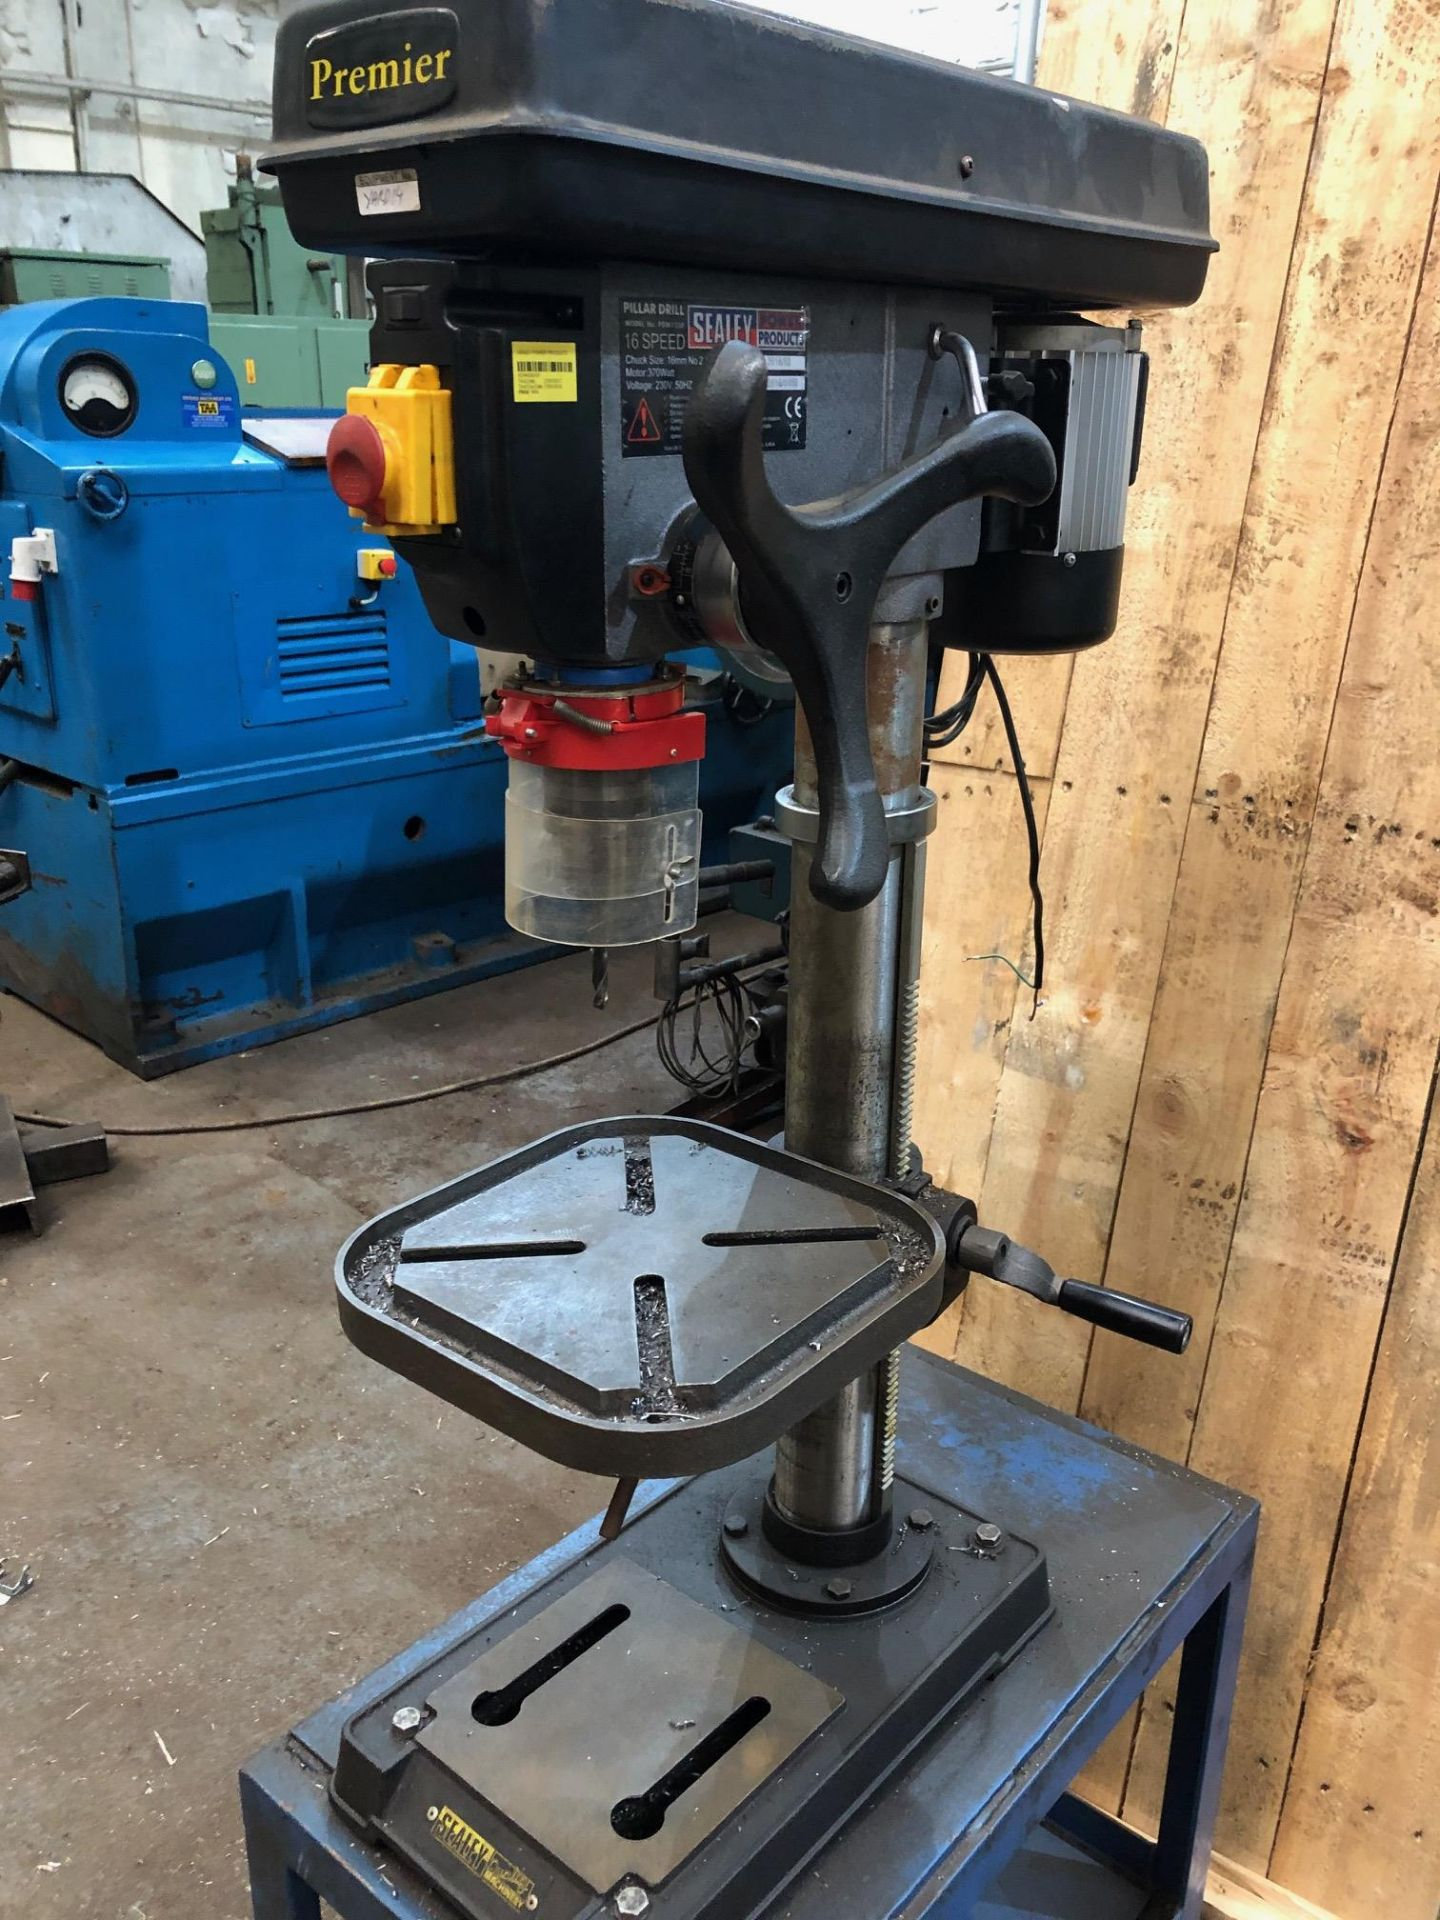 Lot 33 - Sealey PDM 155B Pillar Drill